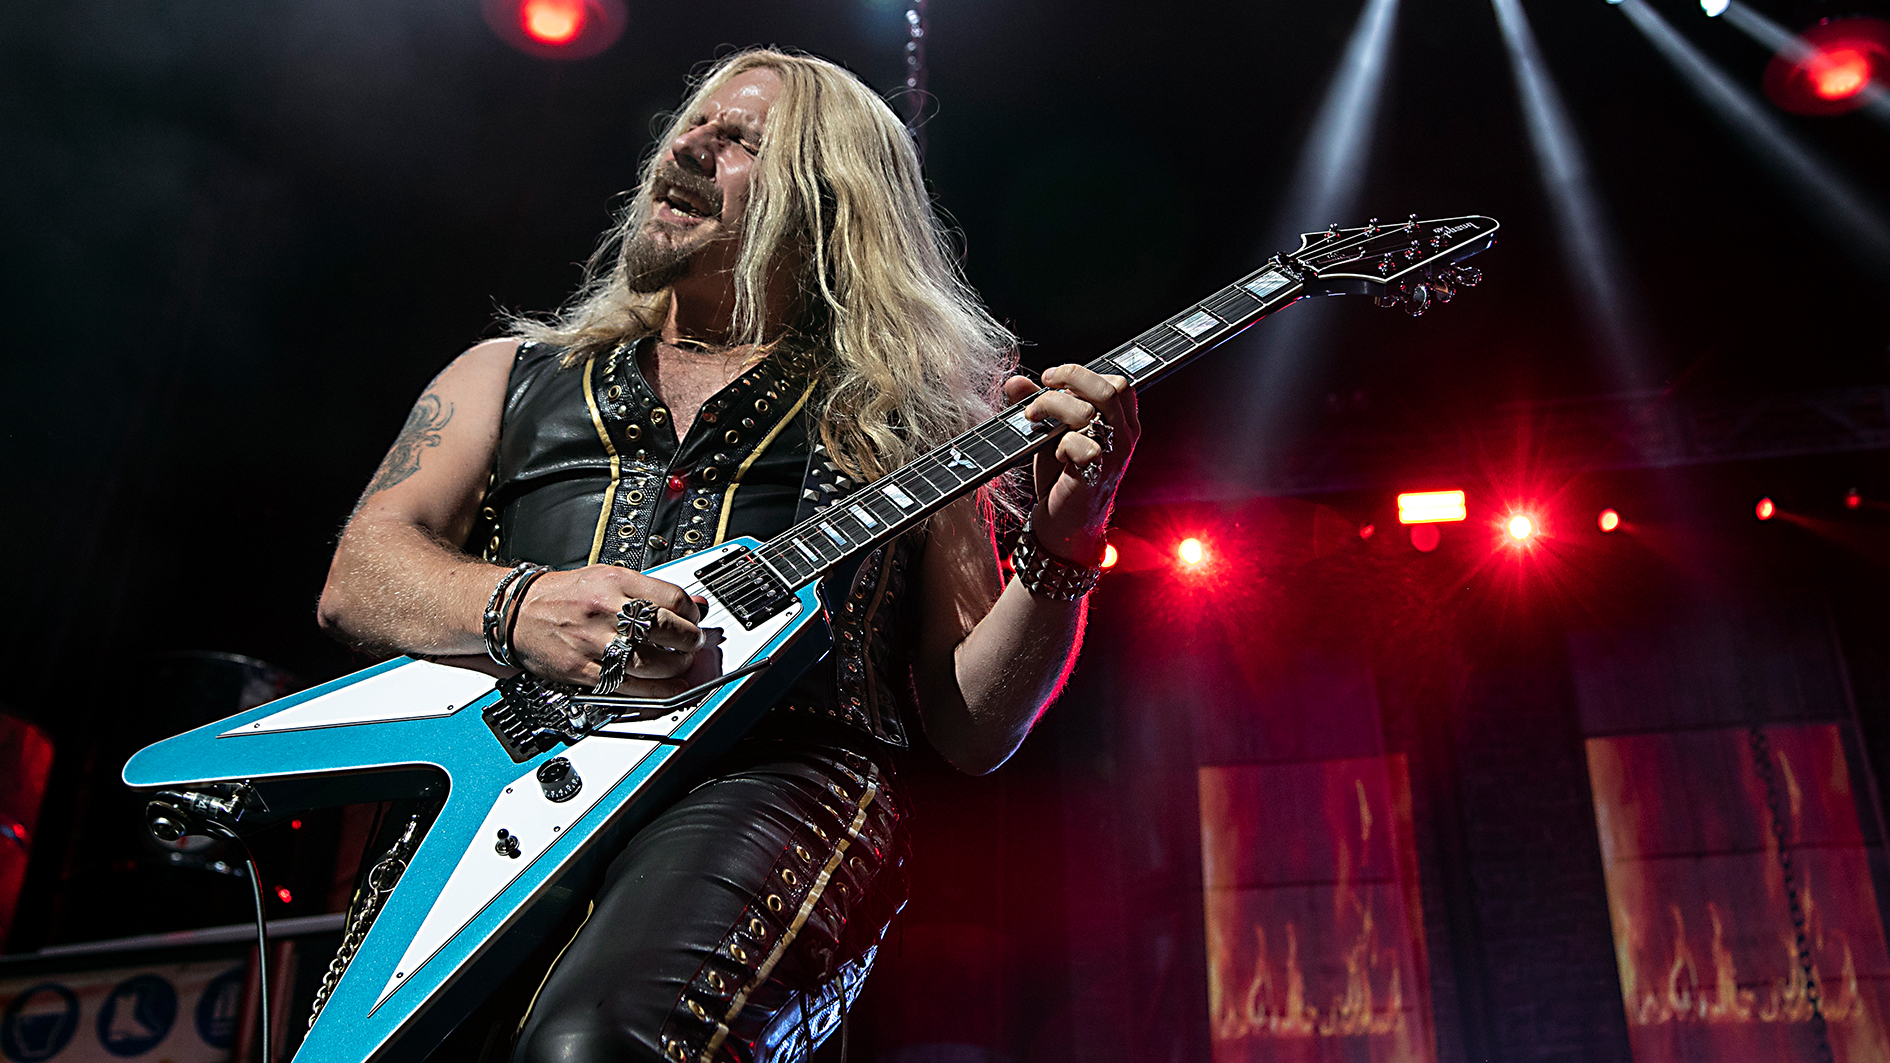 """Judas Priest postpone remainder of US tour as guitarist Richie Faulkner is  hospitalized for """"major medical heart condition issues""""   Guitar World"""